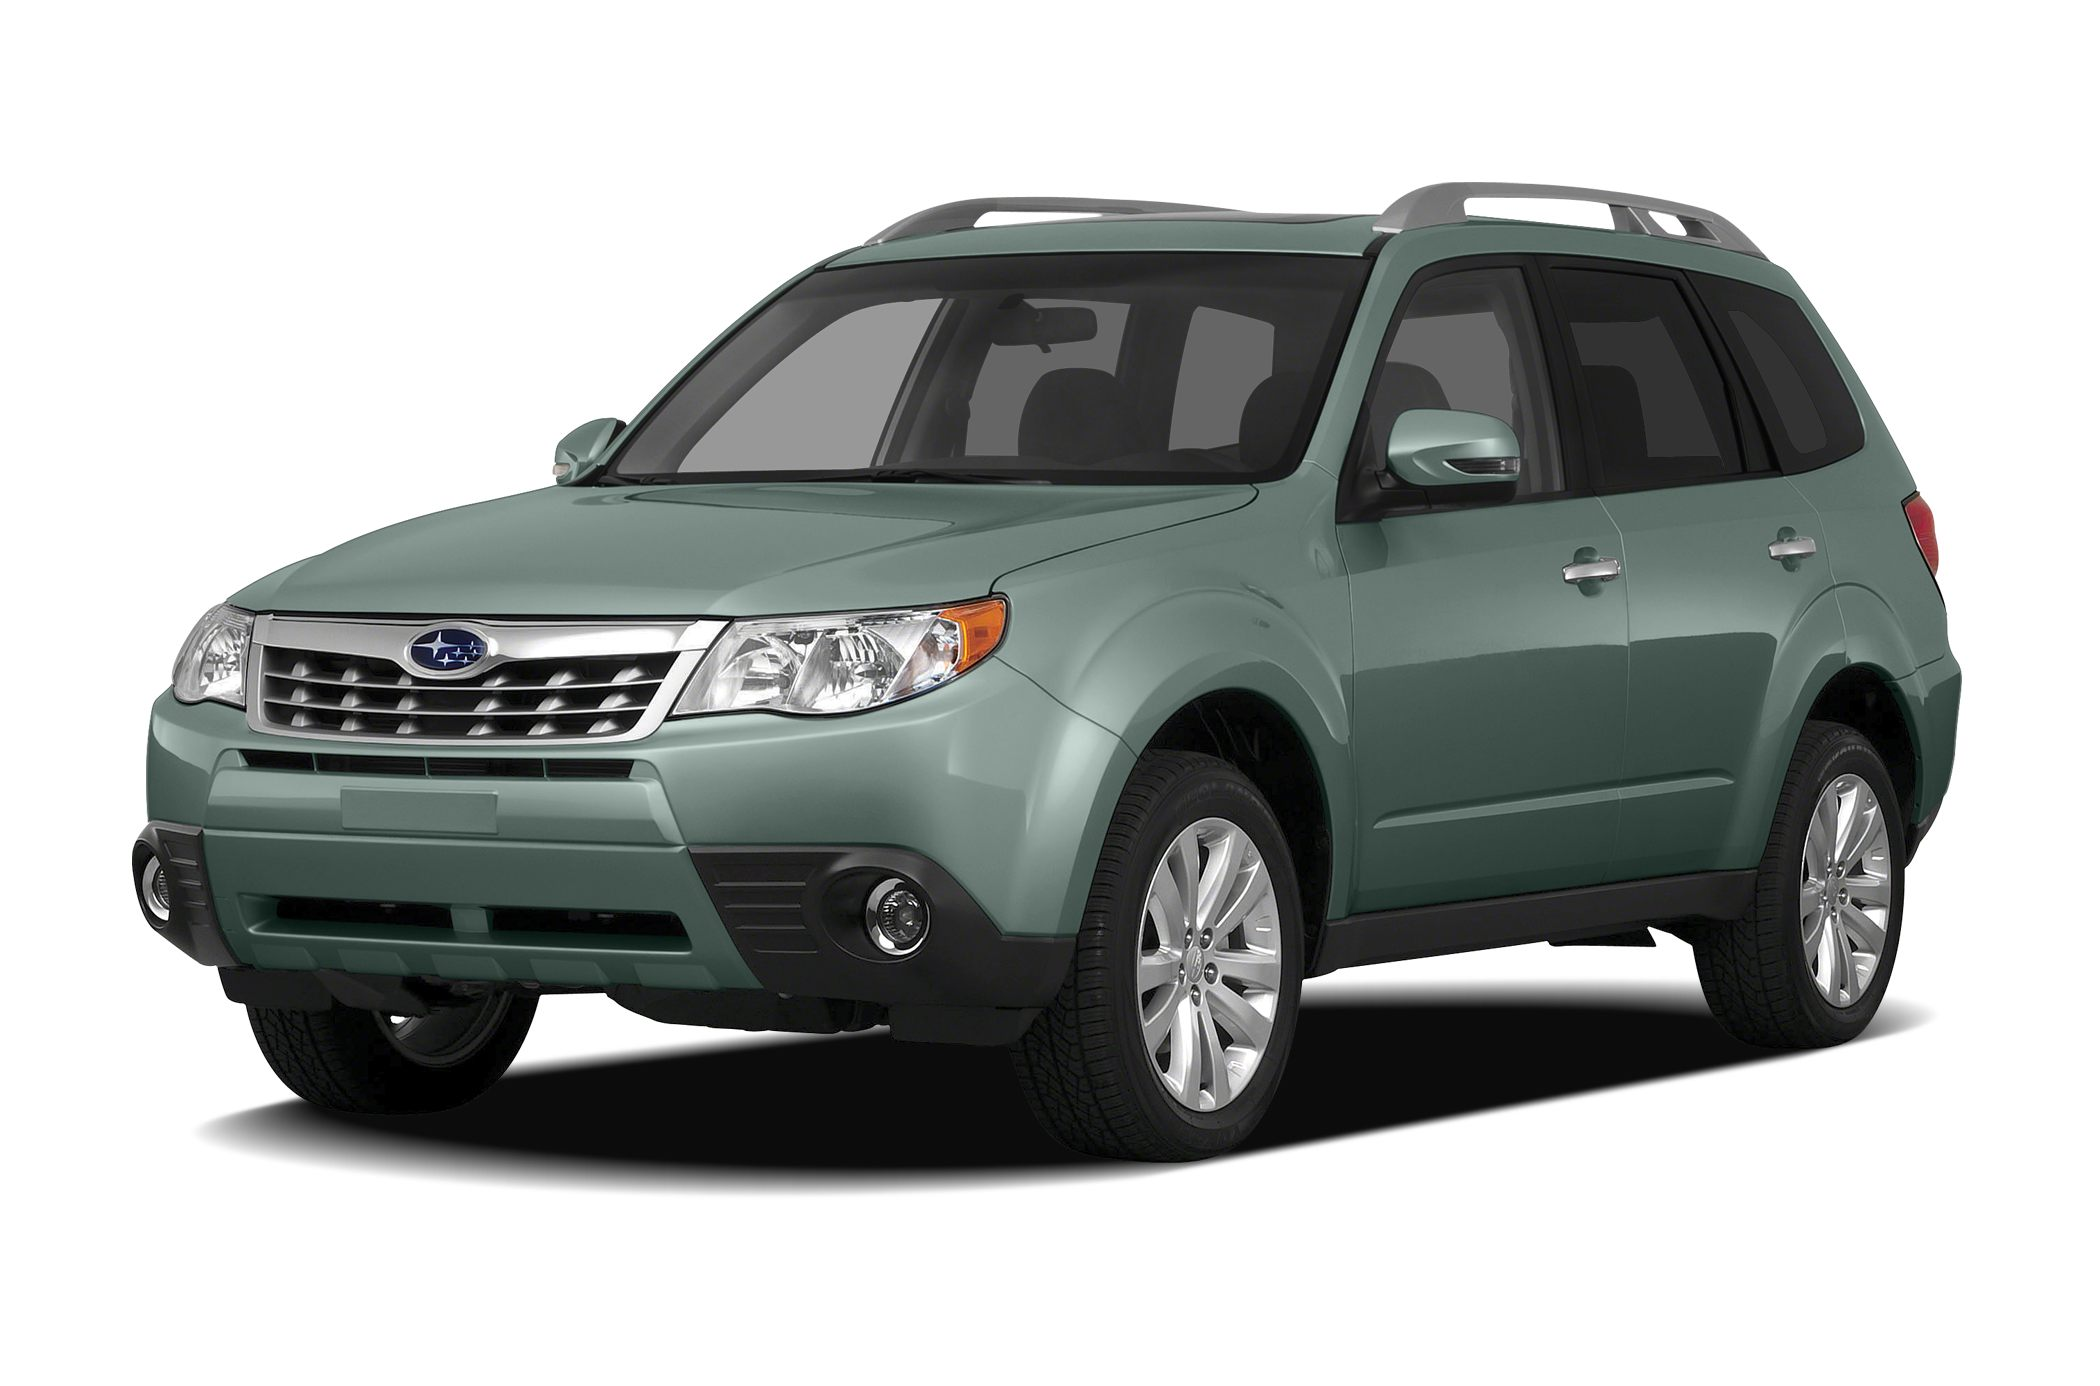 2012 subaru forester safety features rh autoblog com 2012 subaru forester manual transmission problems 2014 subaru forester manual transmission blue